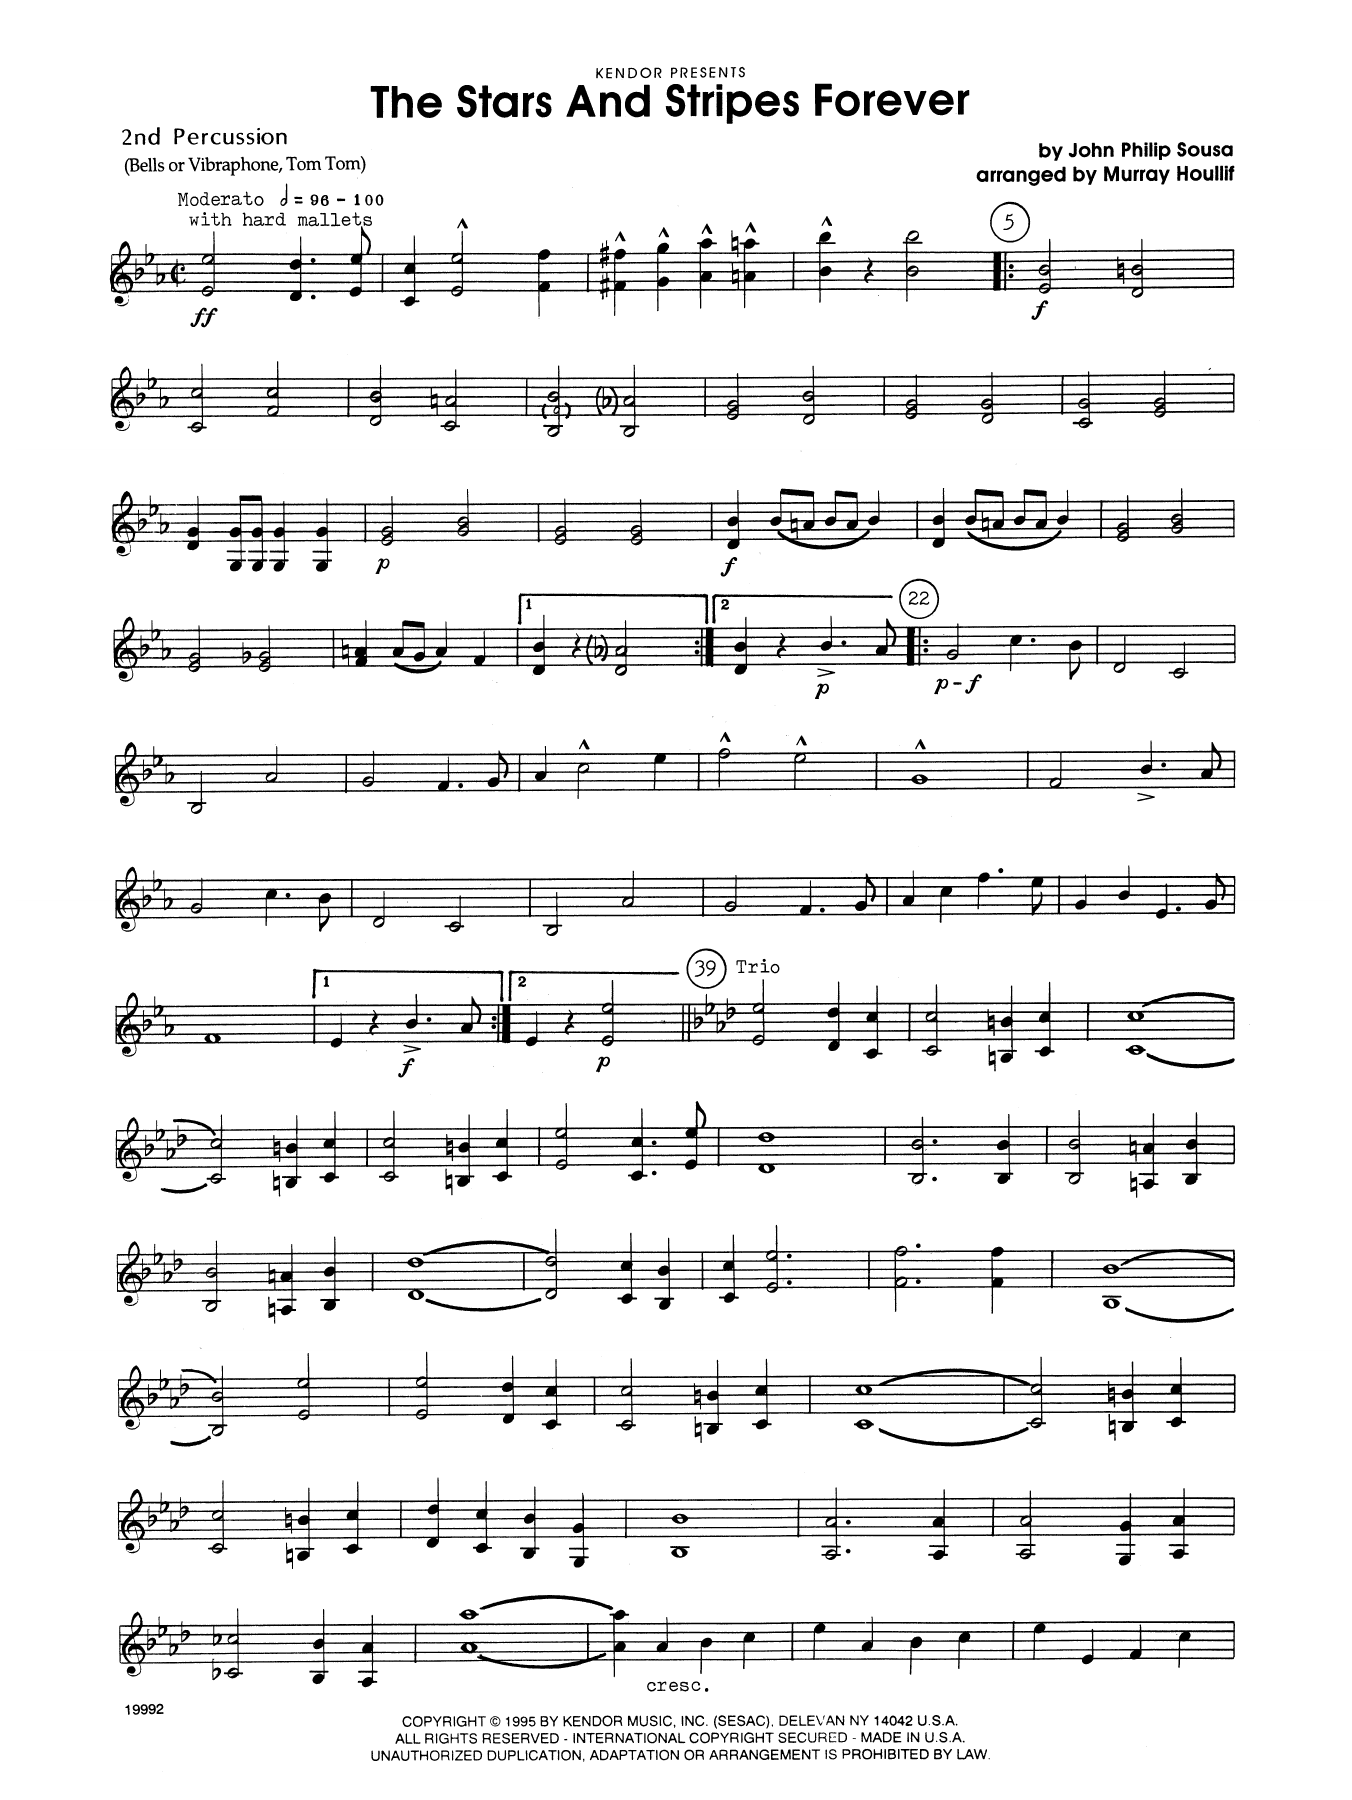 The Stars and Stripes Forever - Percussion 2 Sheet Music